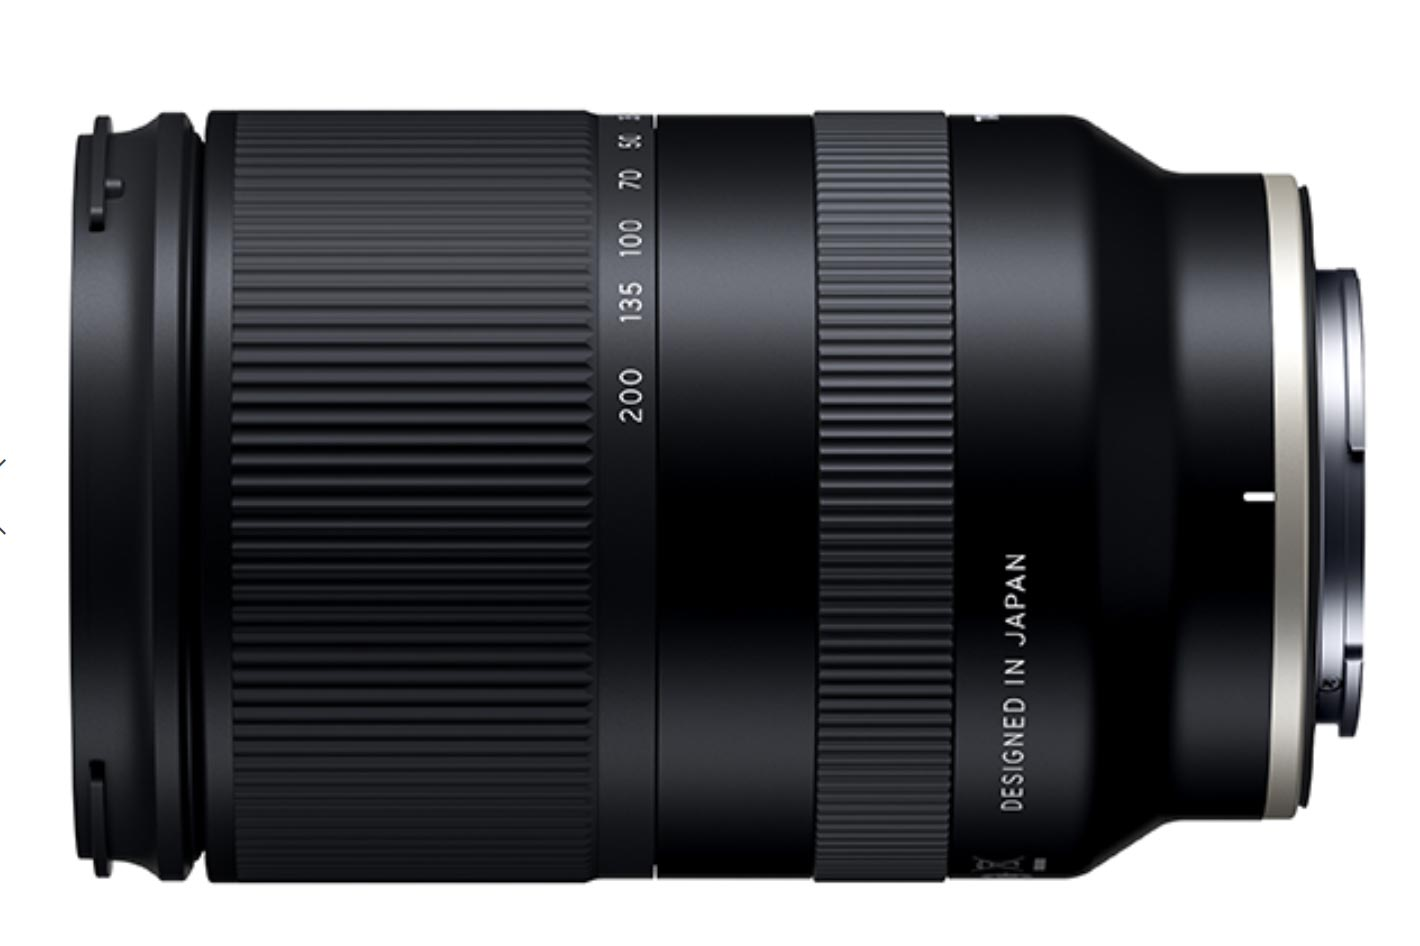 Tamron: the world's first all-in-one zoom lens starting at F2.8